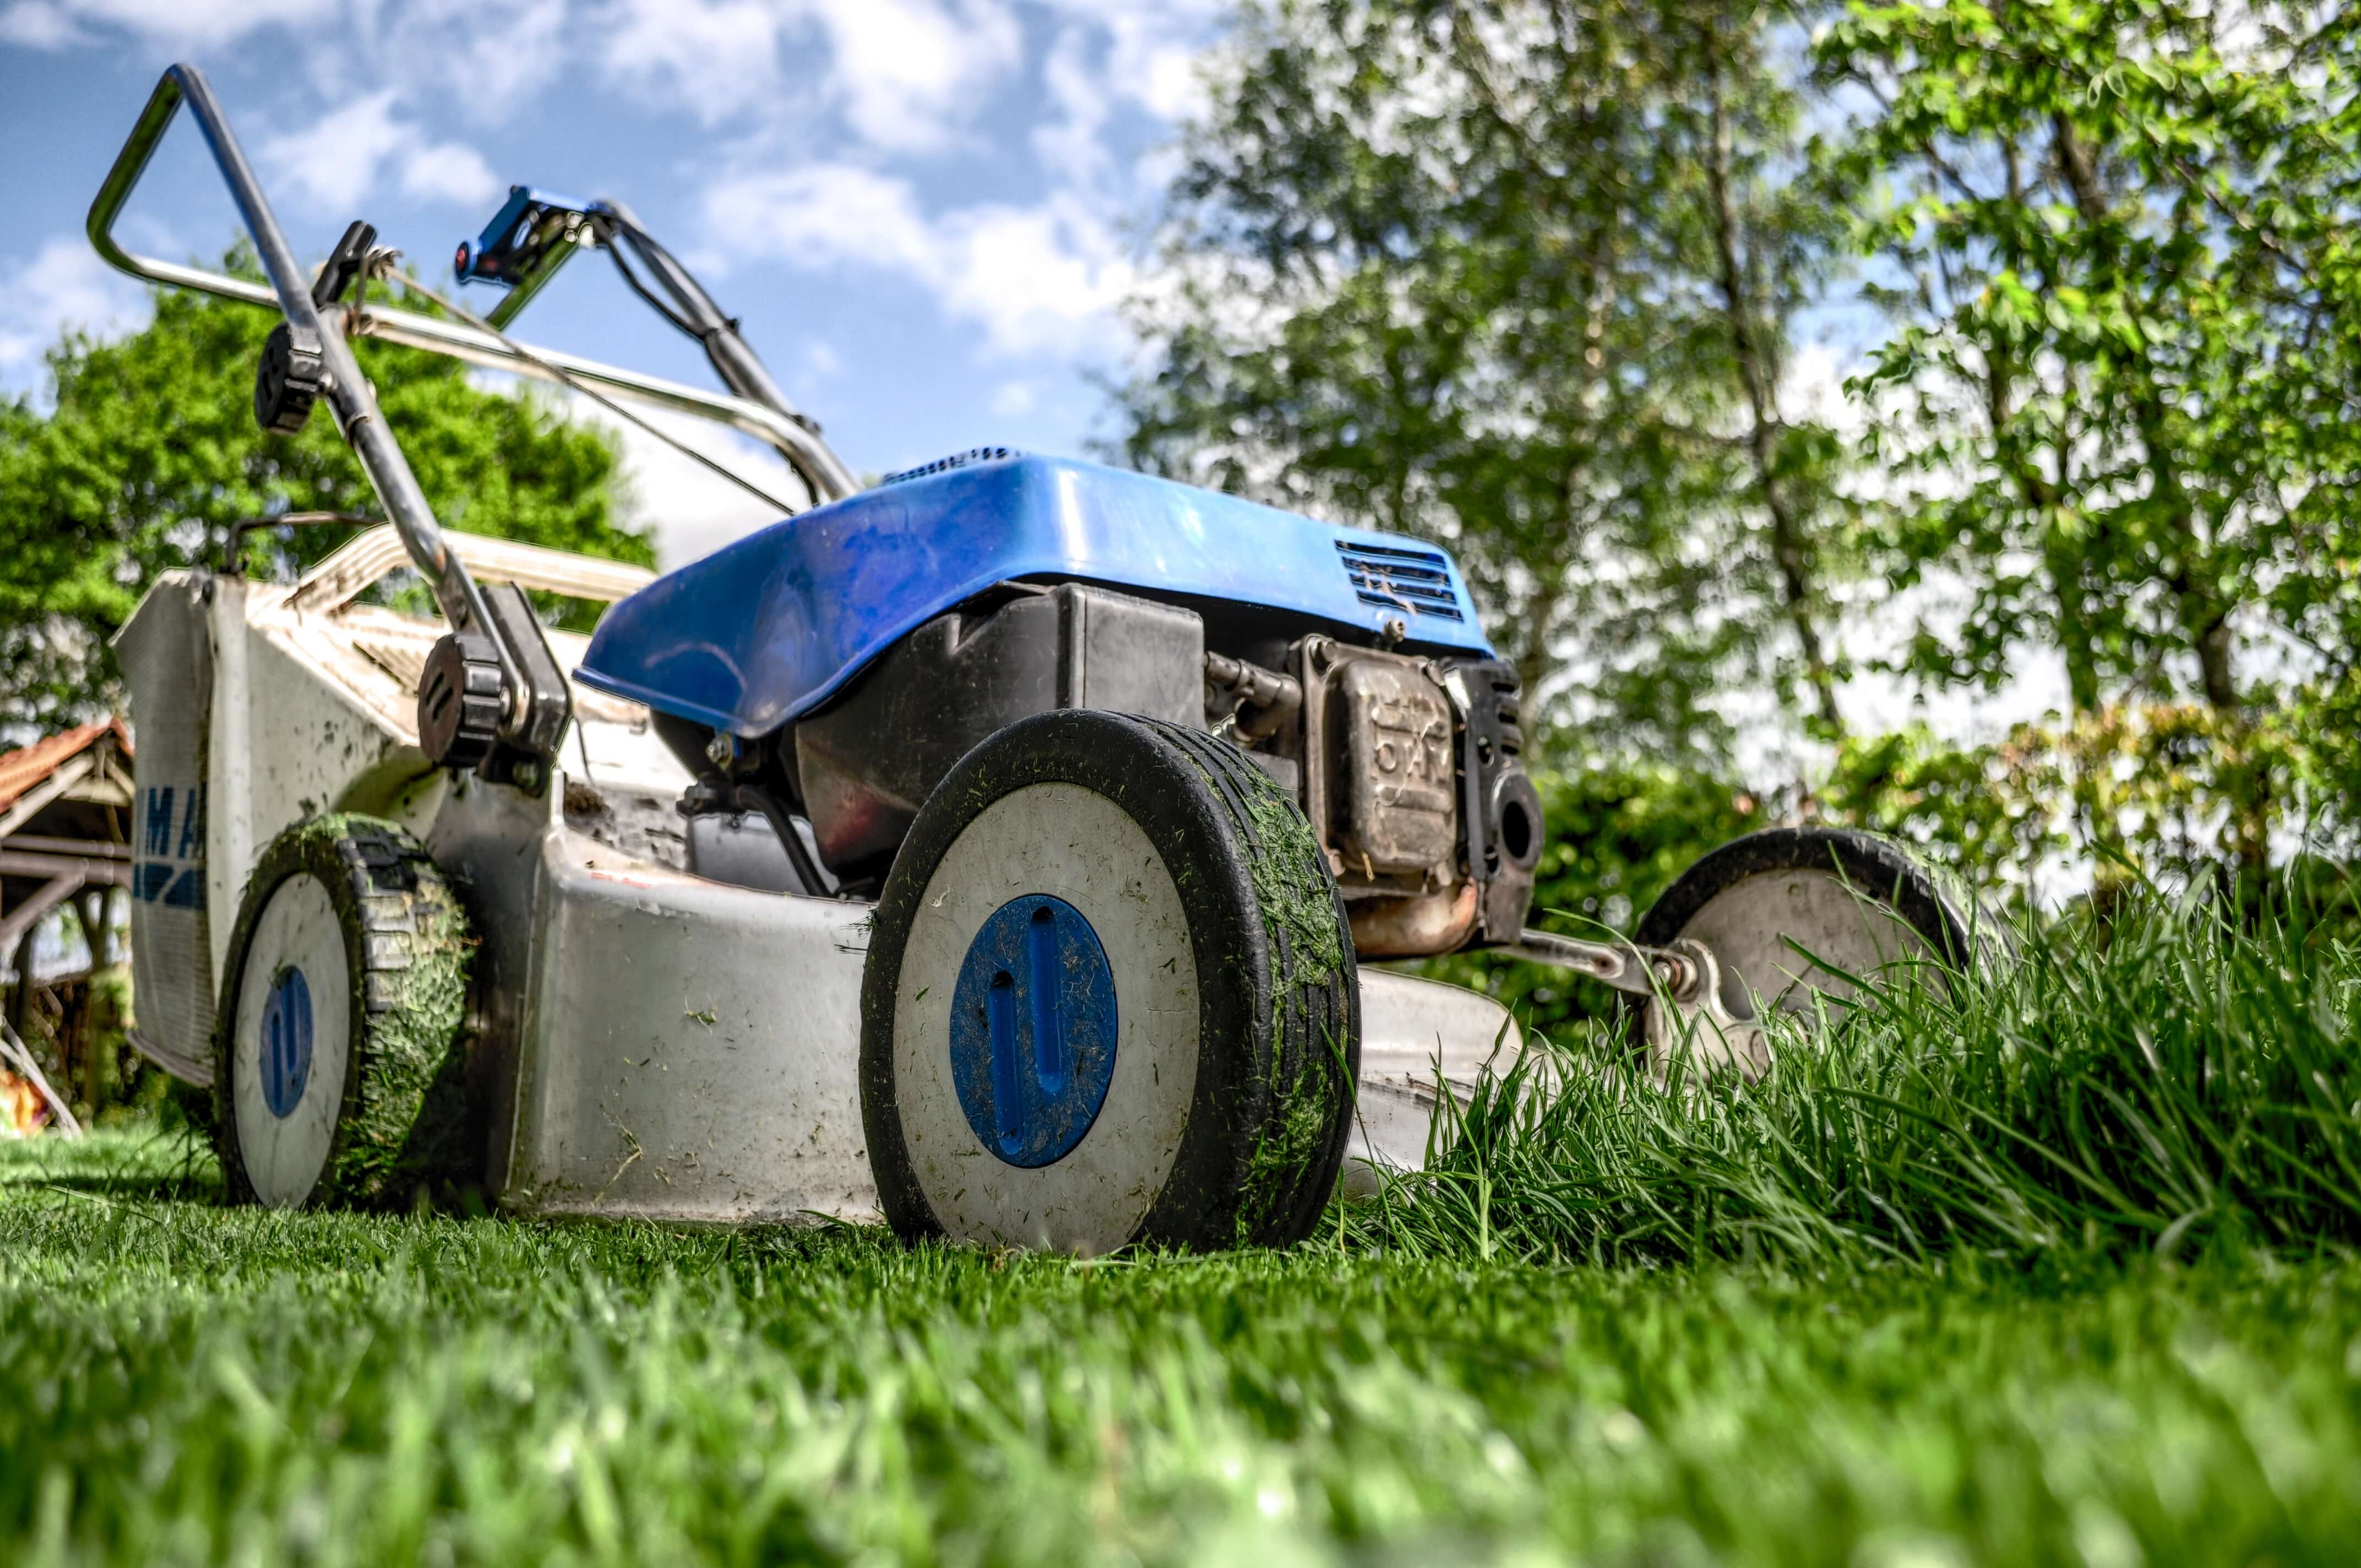 Top 6 Lawn Care Business Apps to Grow Your Business